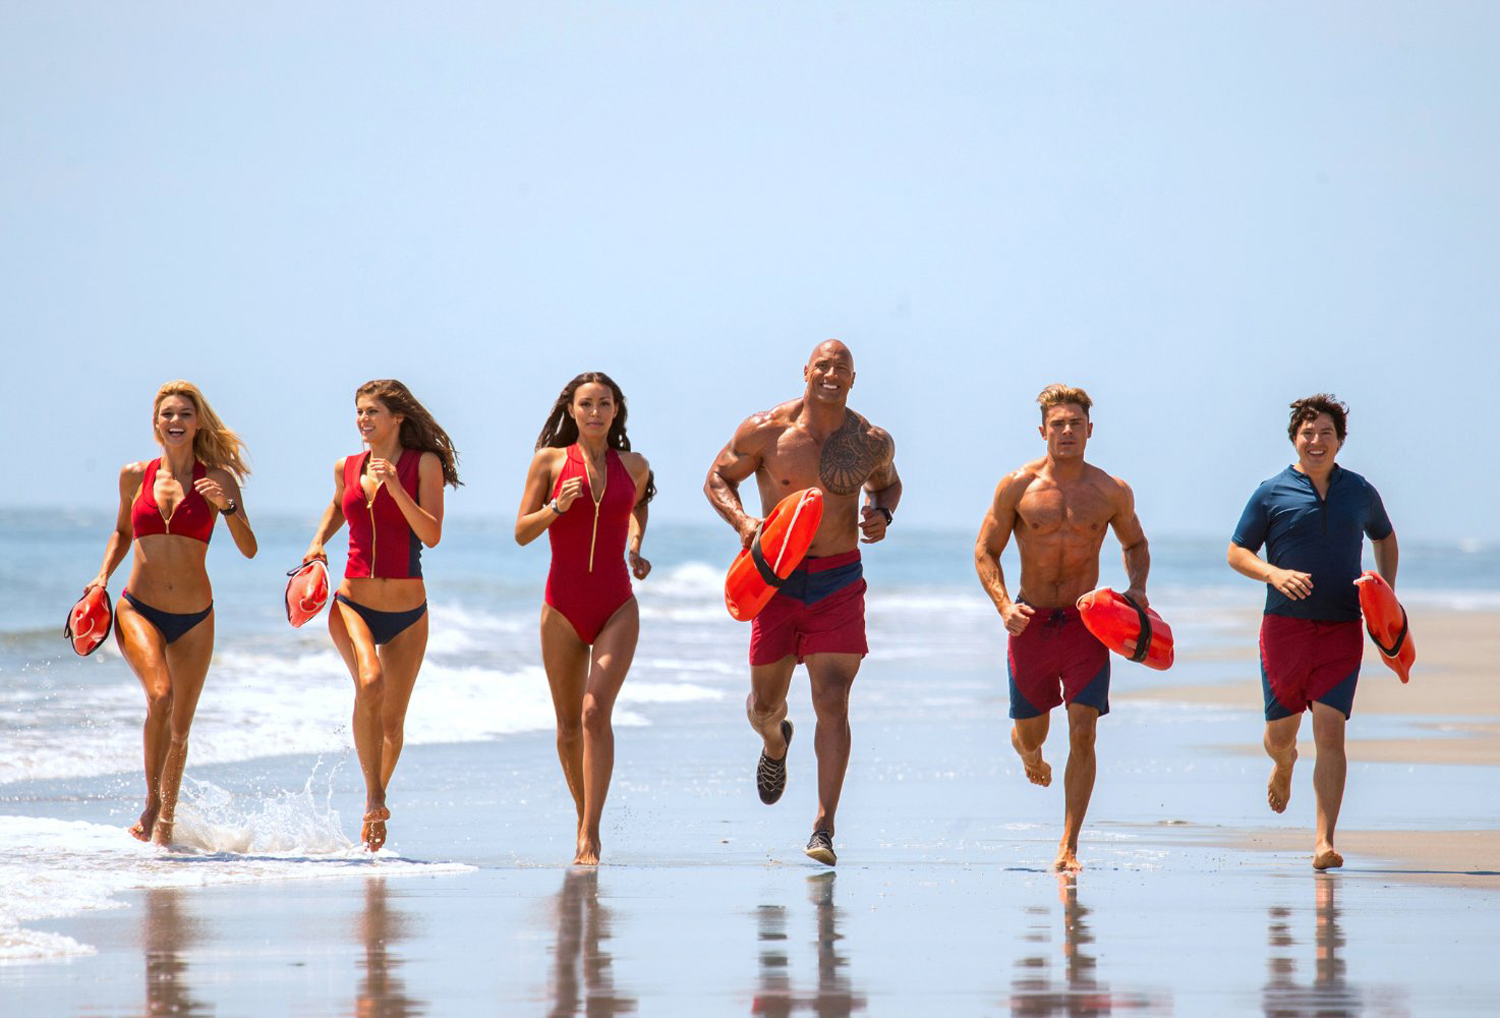 Kelly Rohrbach, Zac Efron, Alexandra Daddario, Dwayne 'The Rock' Johnson